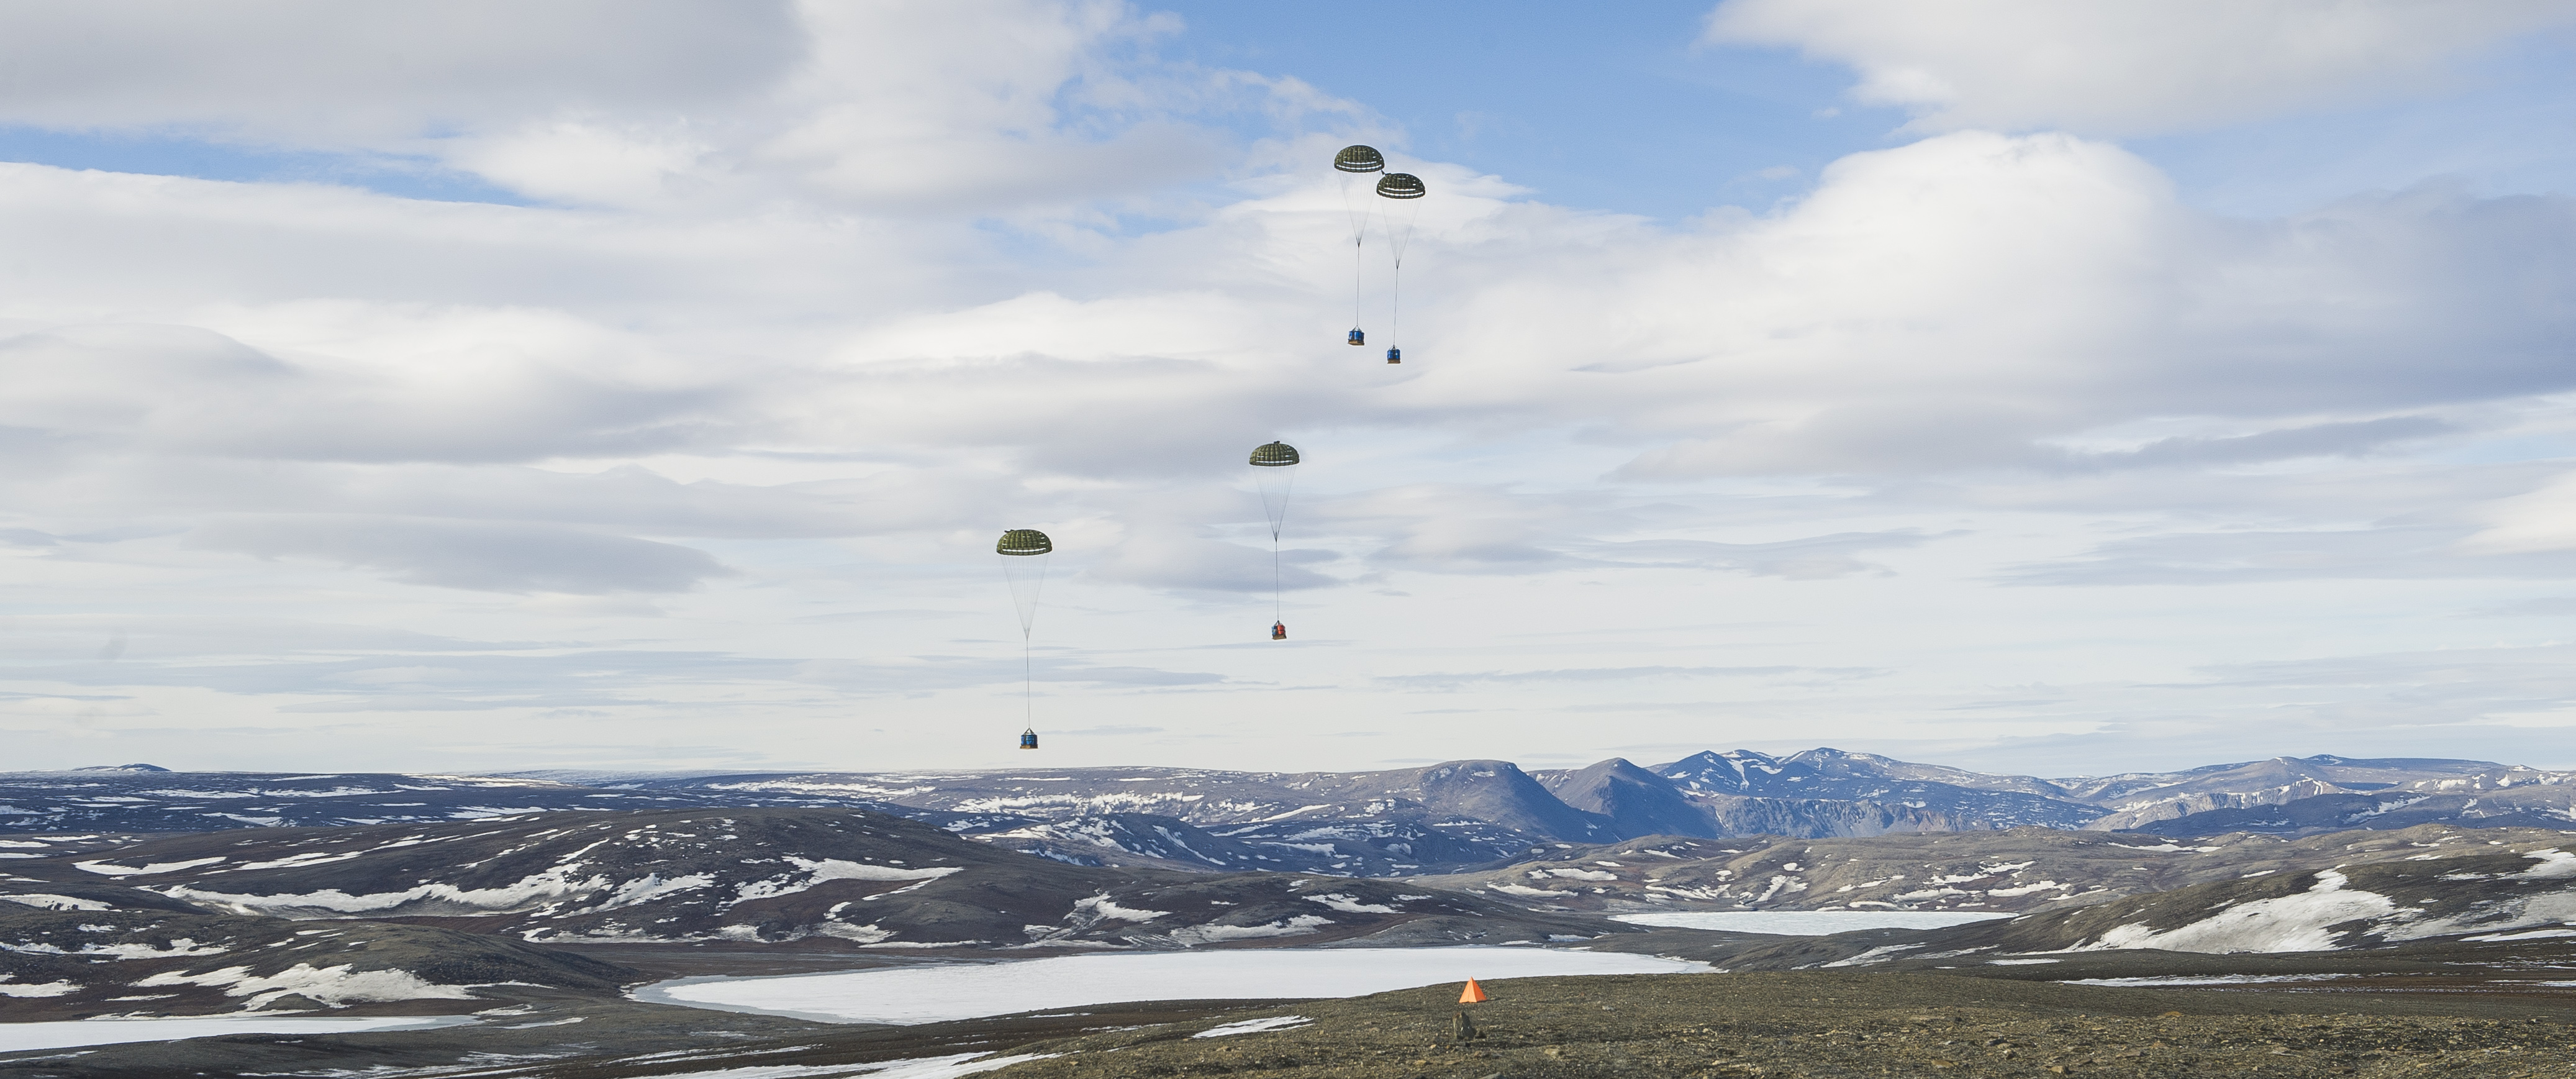 The airdrop at the northernmost habitation on Earth was conducted to validate the Royal Canadian Air Force's capability to sustain Canadian Forces Station Alert year-round, regardless of weather or other conditions, to support Canadian Armed Forces operations and presence in the North. PHOTO: Private Natasha Punt